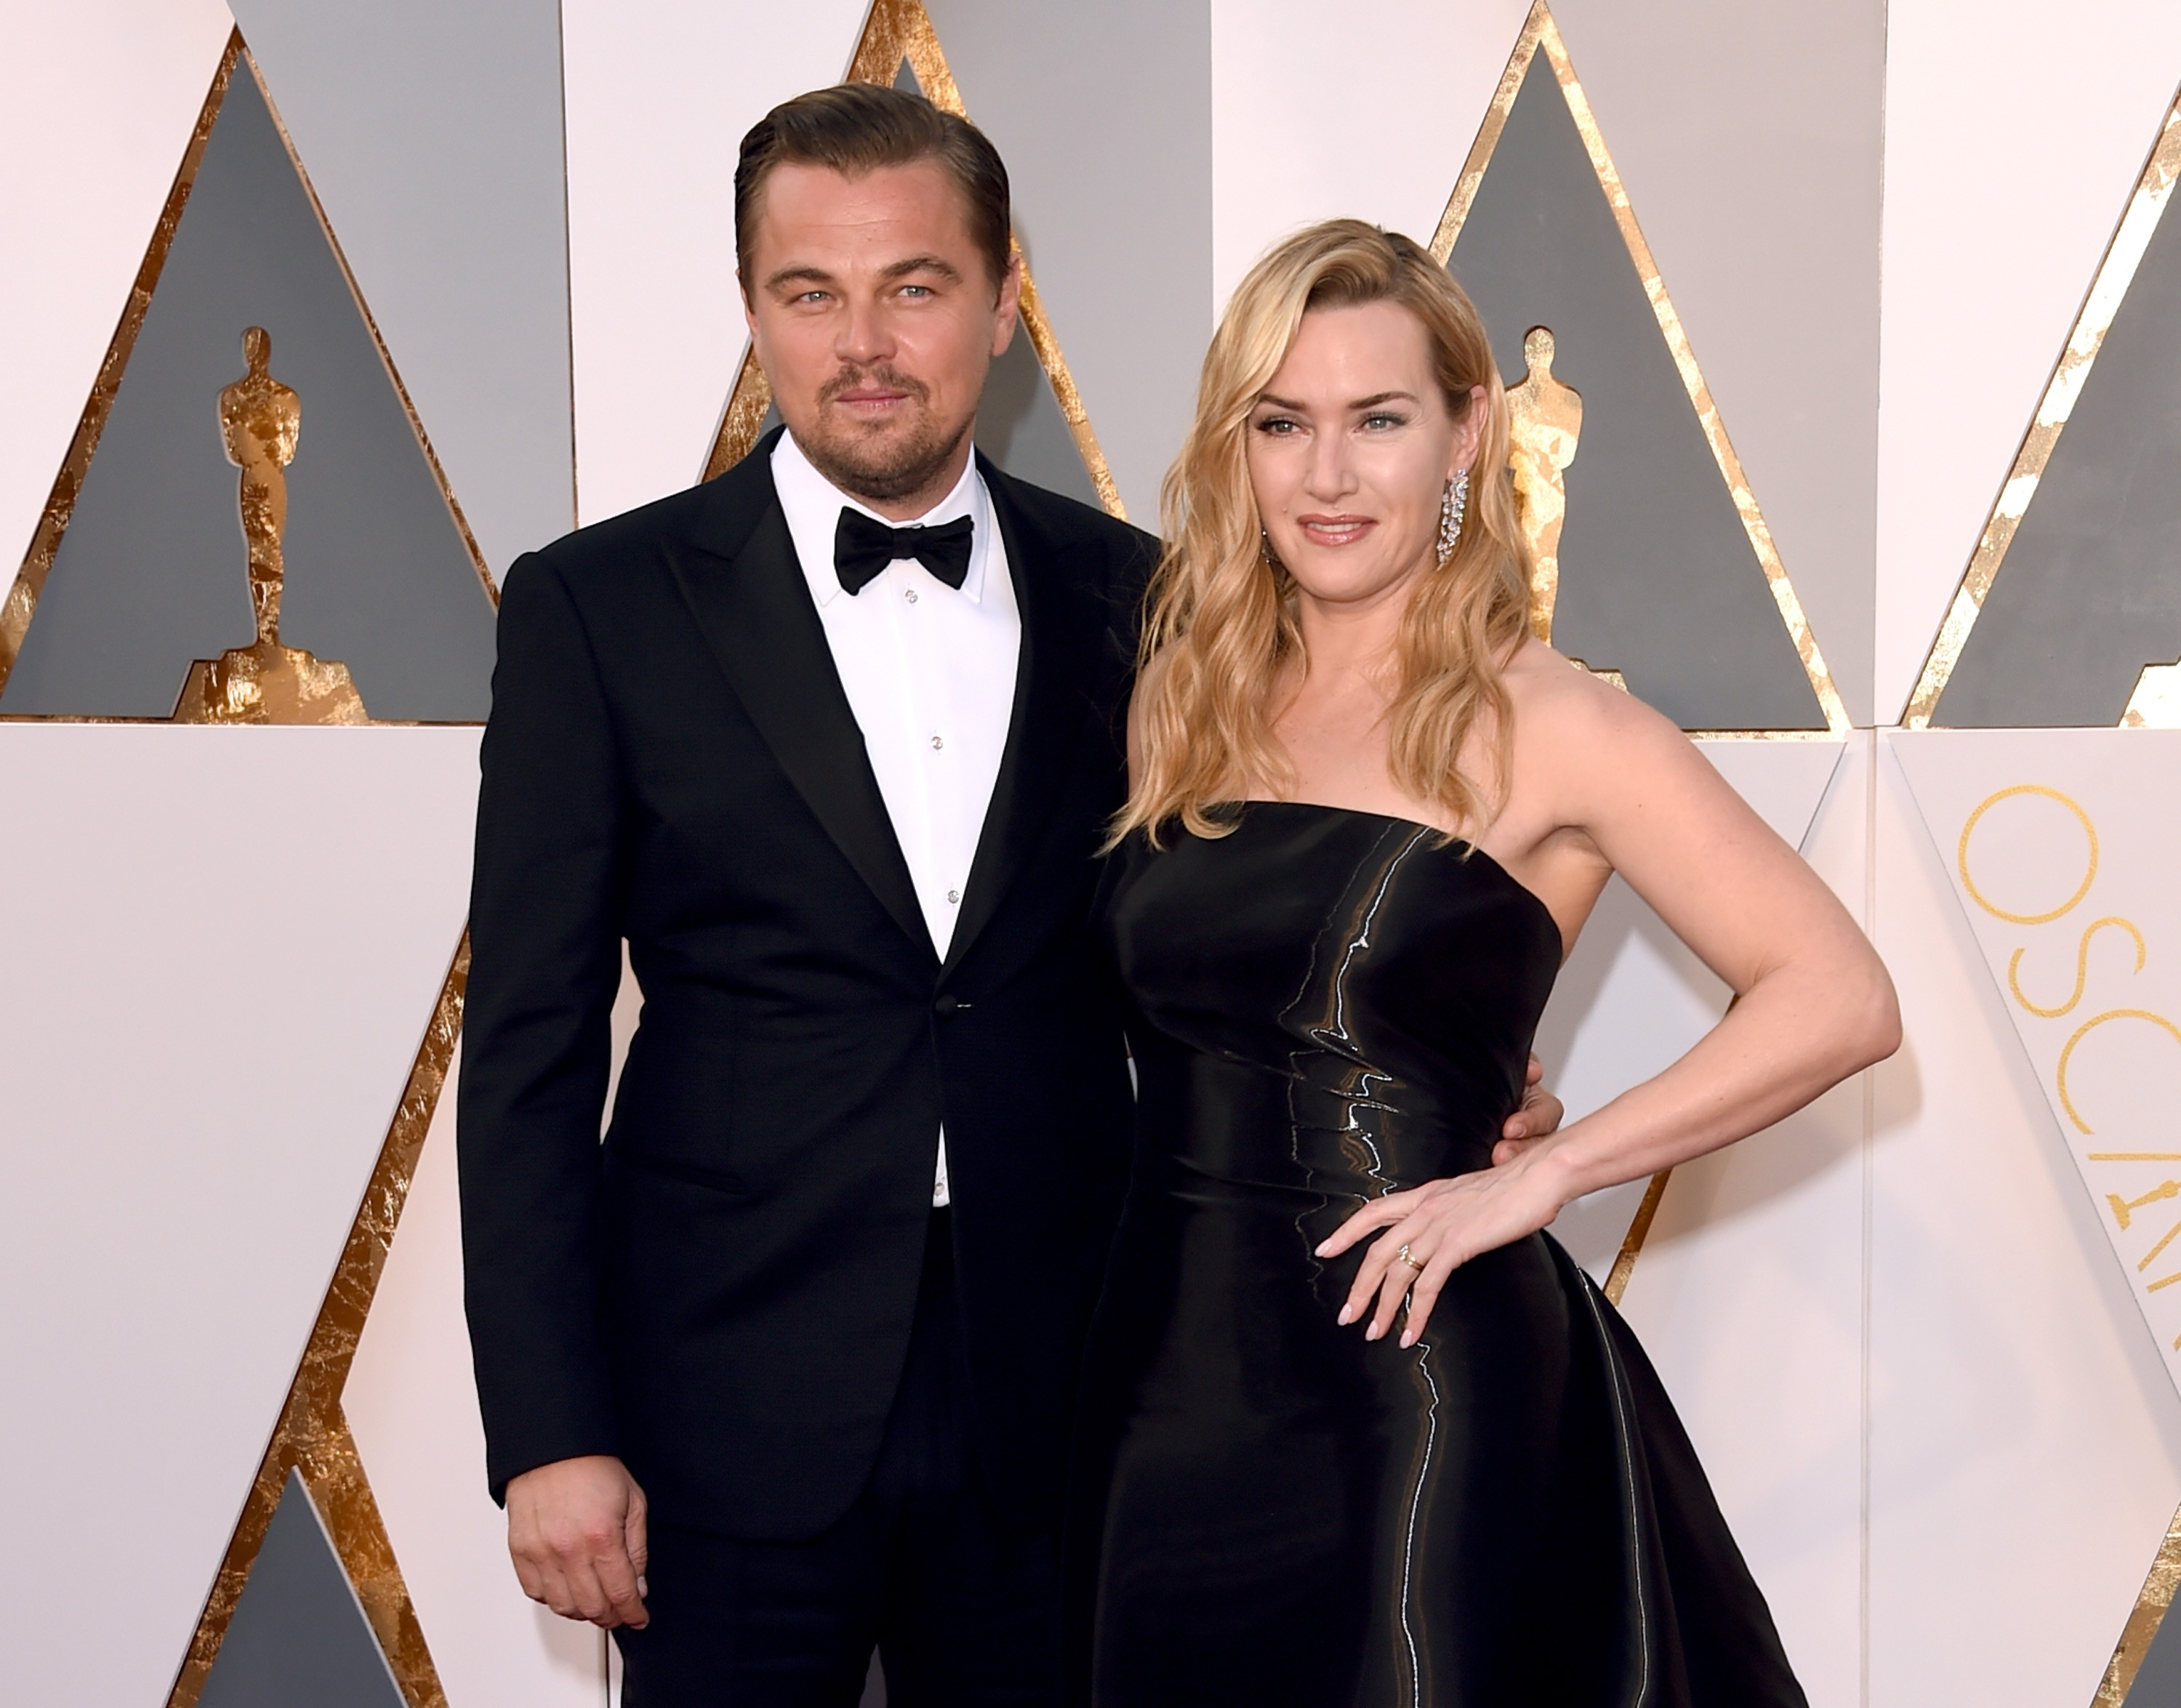 Leonardo DiCaprio e Kate Winslet (Foto: Getty Images)